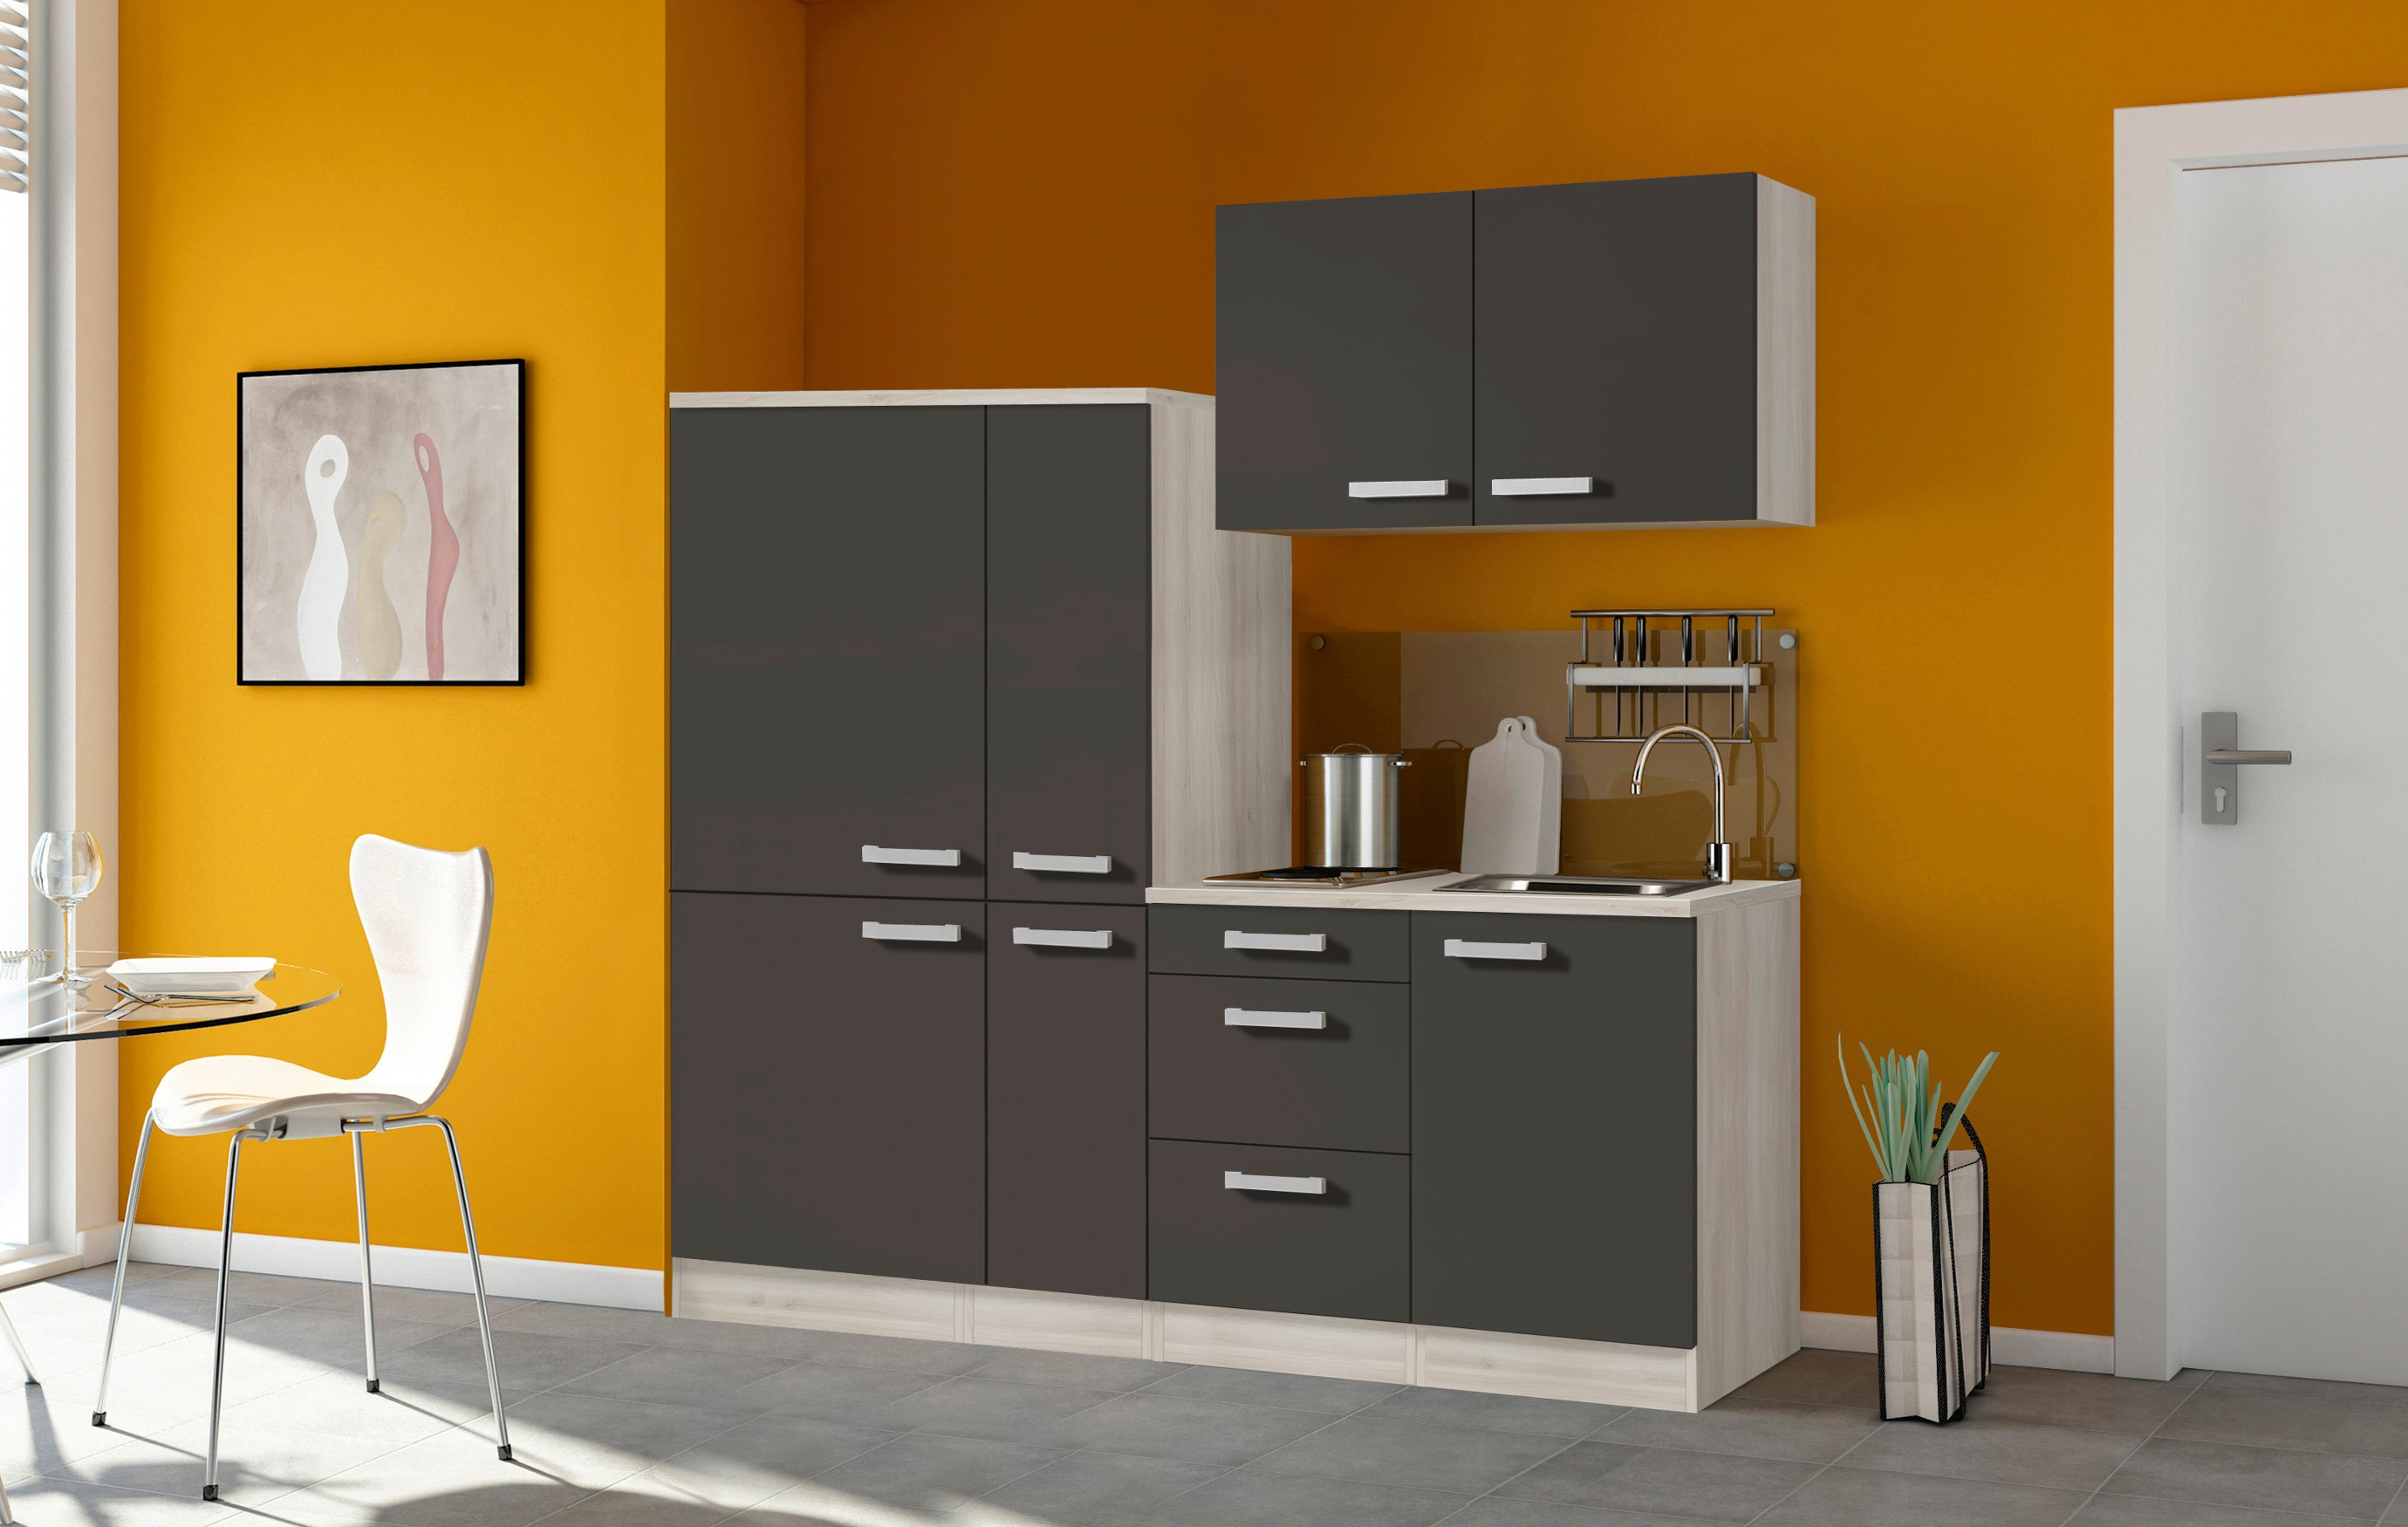 singlek che barcelona mit elektro kochfeld breite 190 cm grau k che. Black Bedroom Furniture Sets. Home Design Ideas